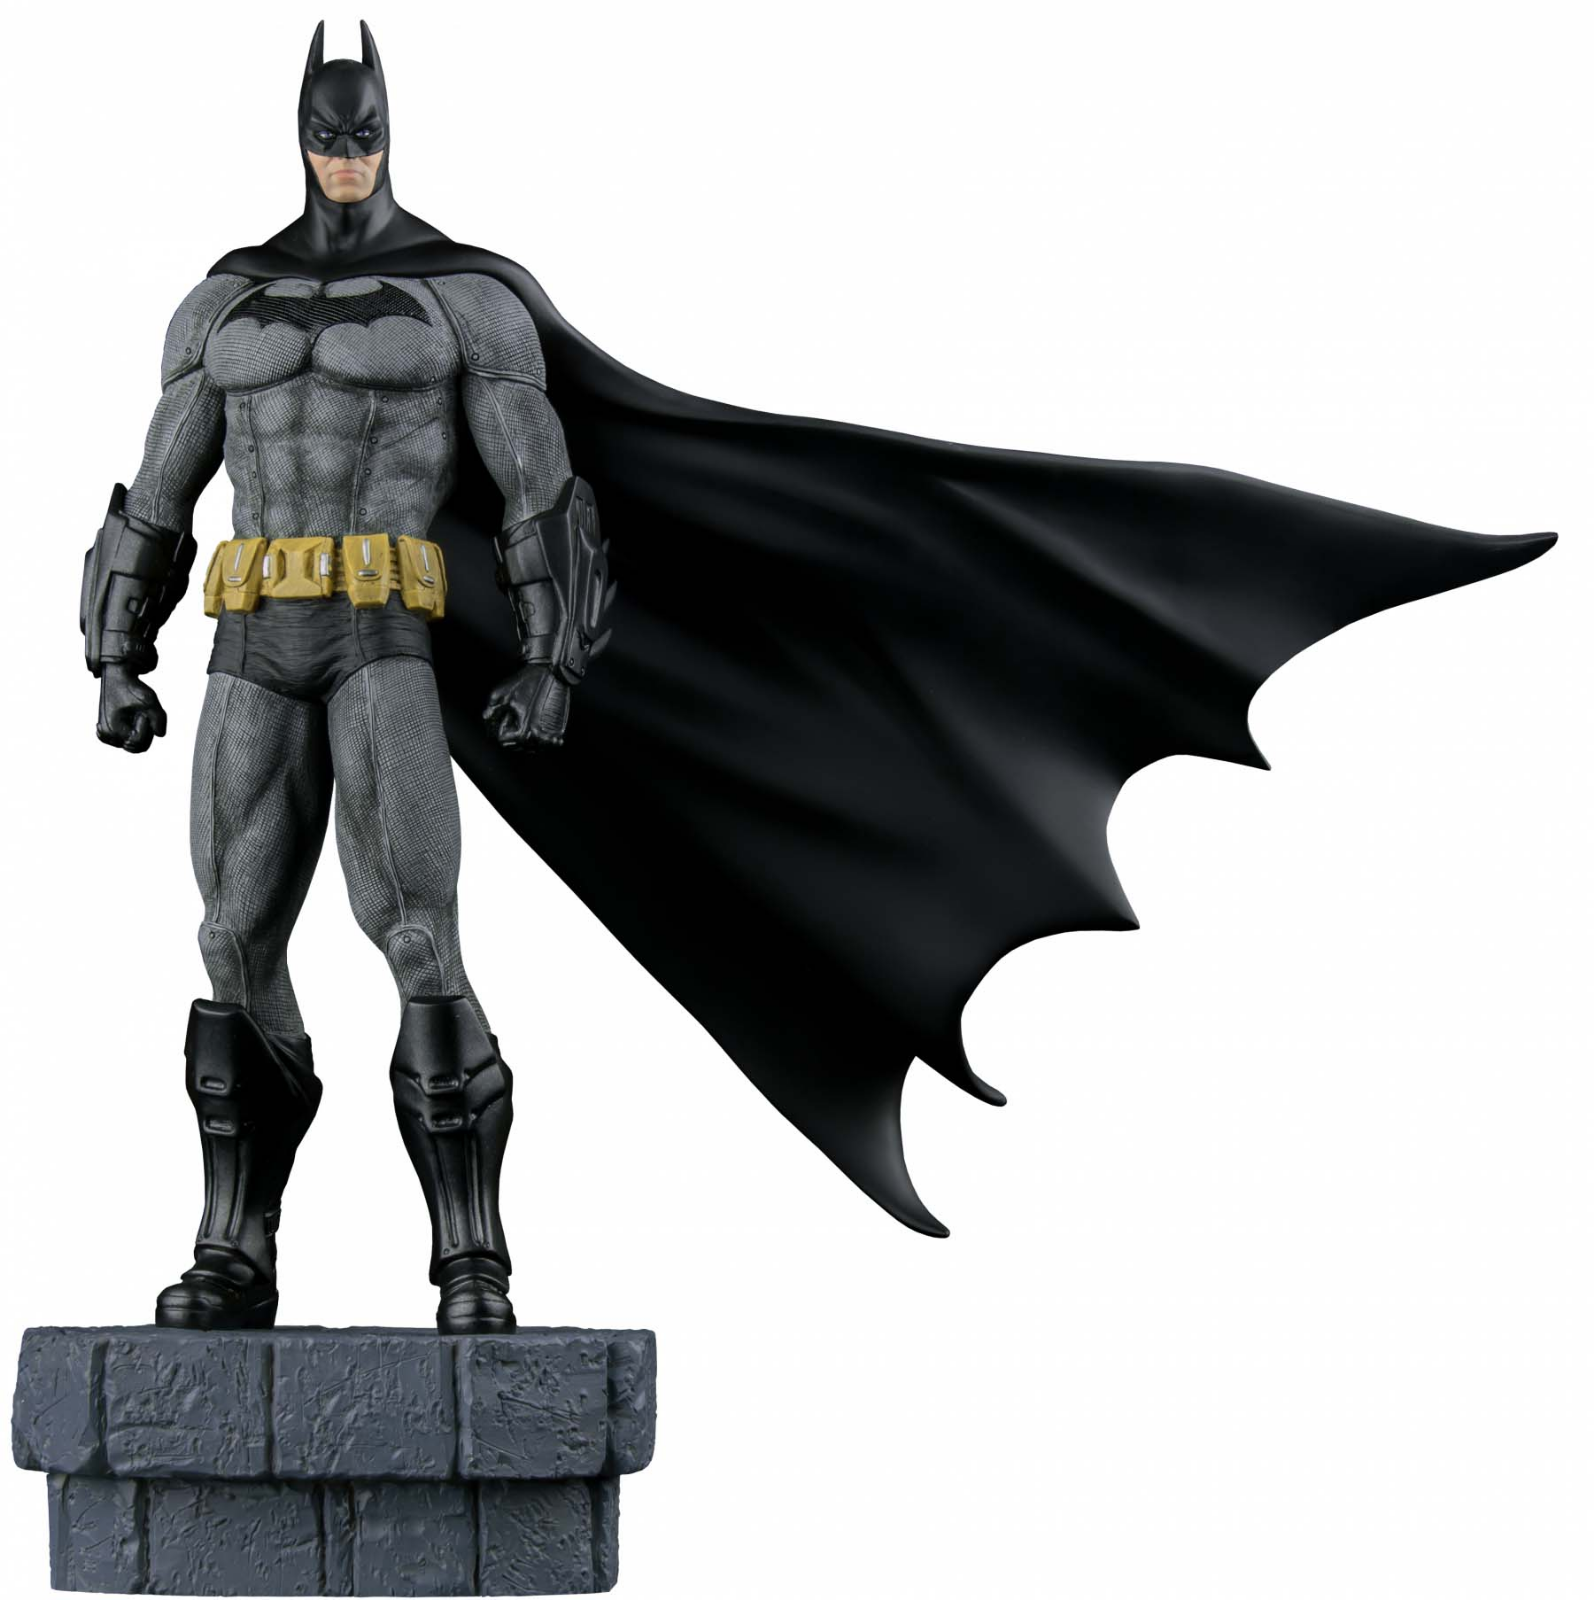 BAThomme  Arkham City -  Bathomme 1 6th Scale Statue (Ikon Collectables)  nouveau  boutique en ligne